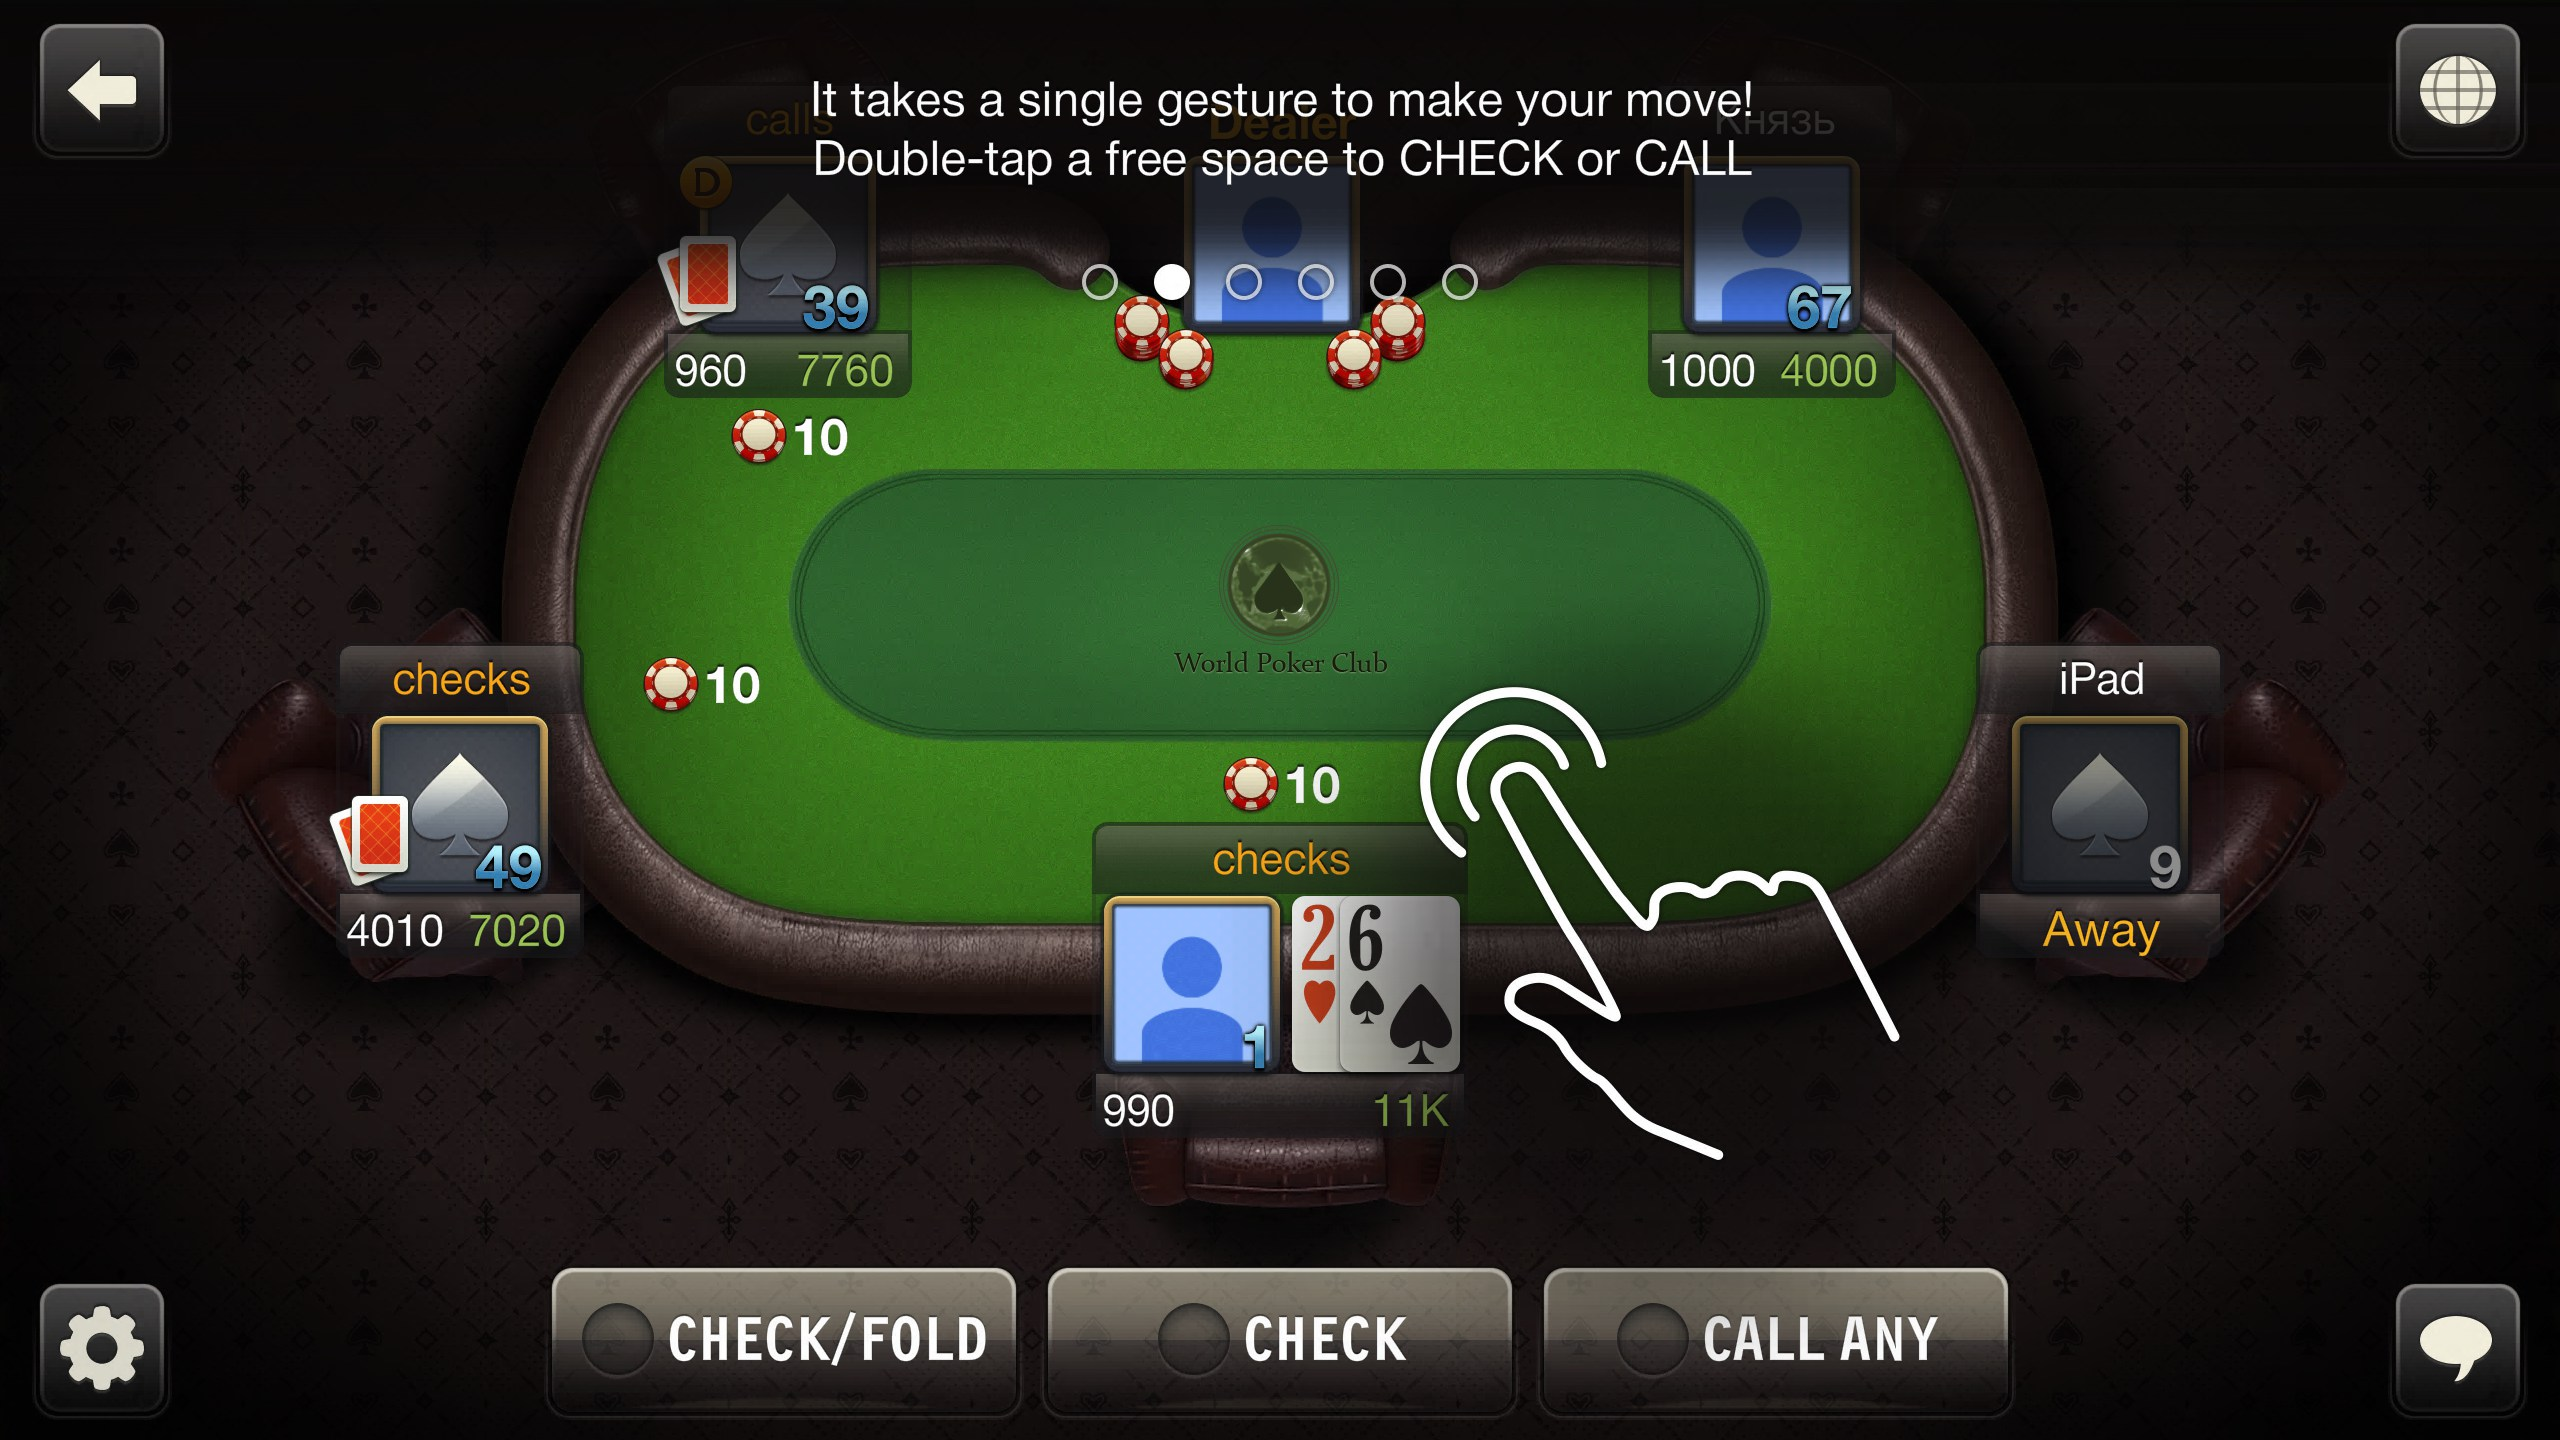 Pokerstars helper